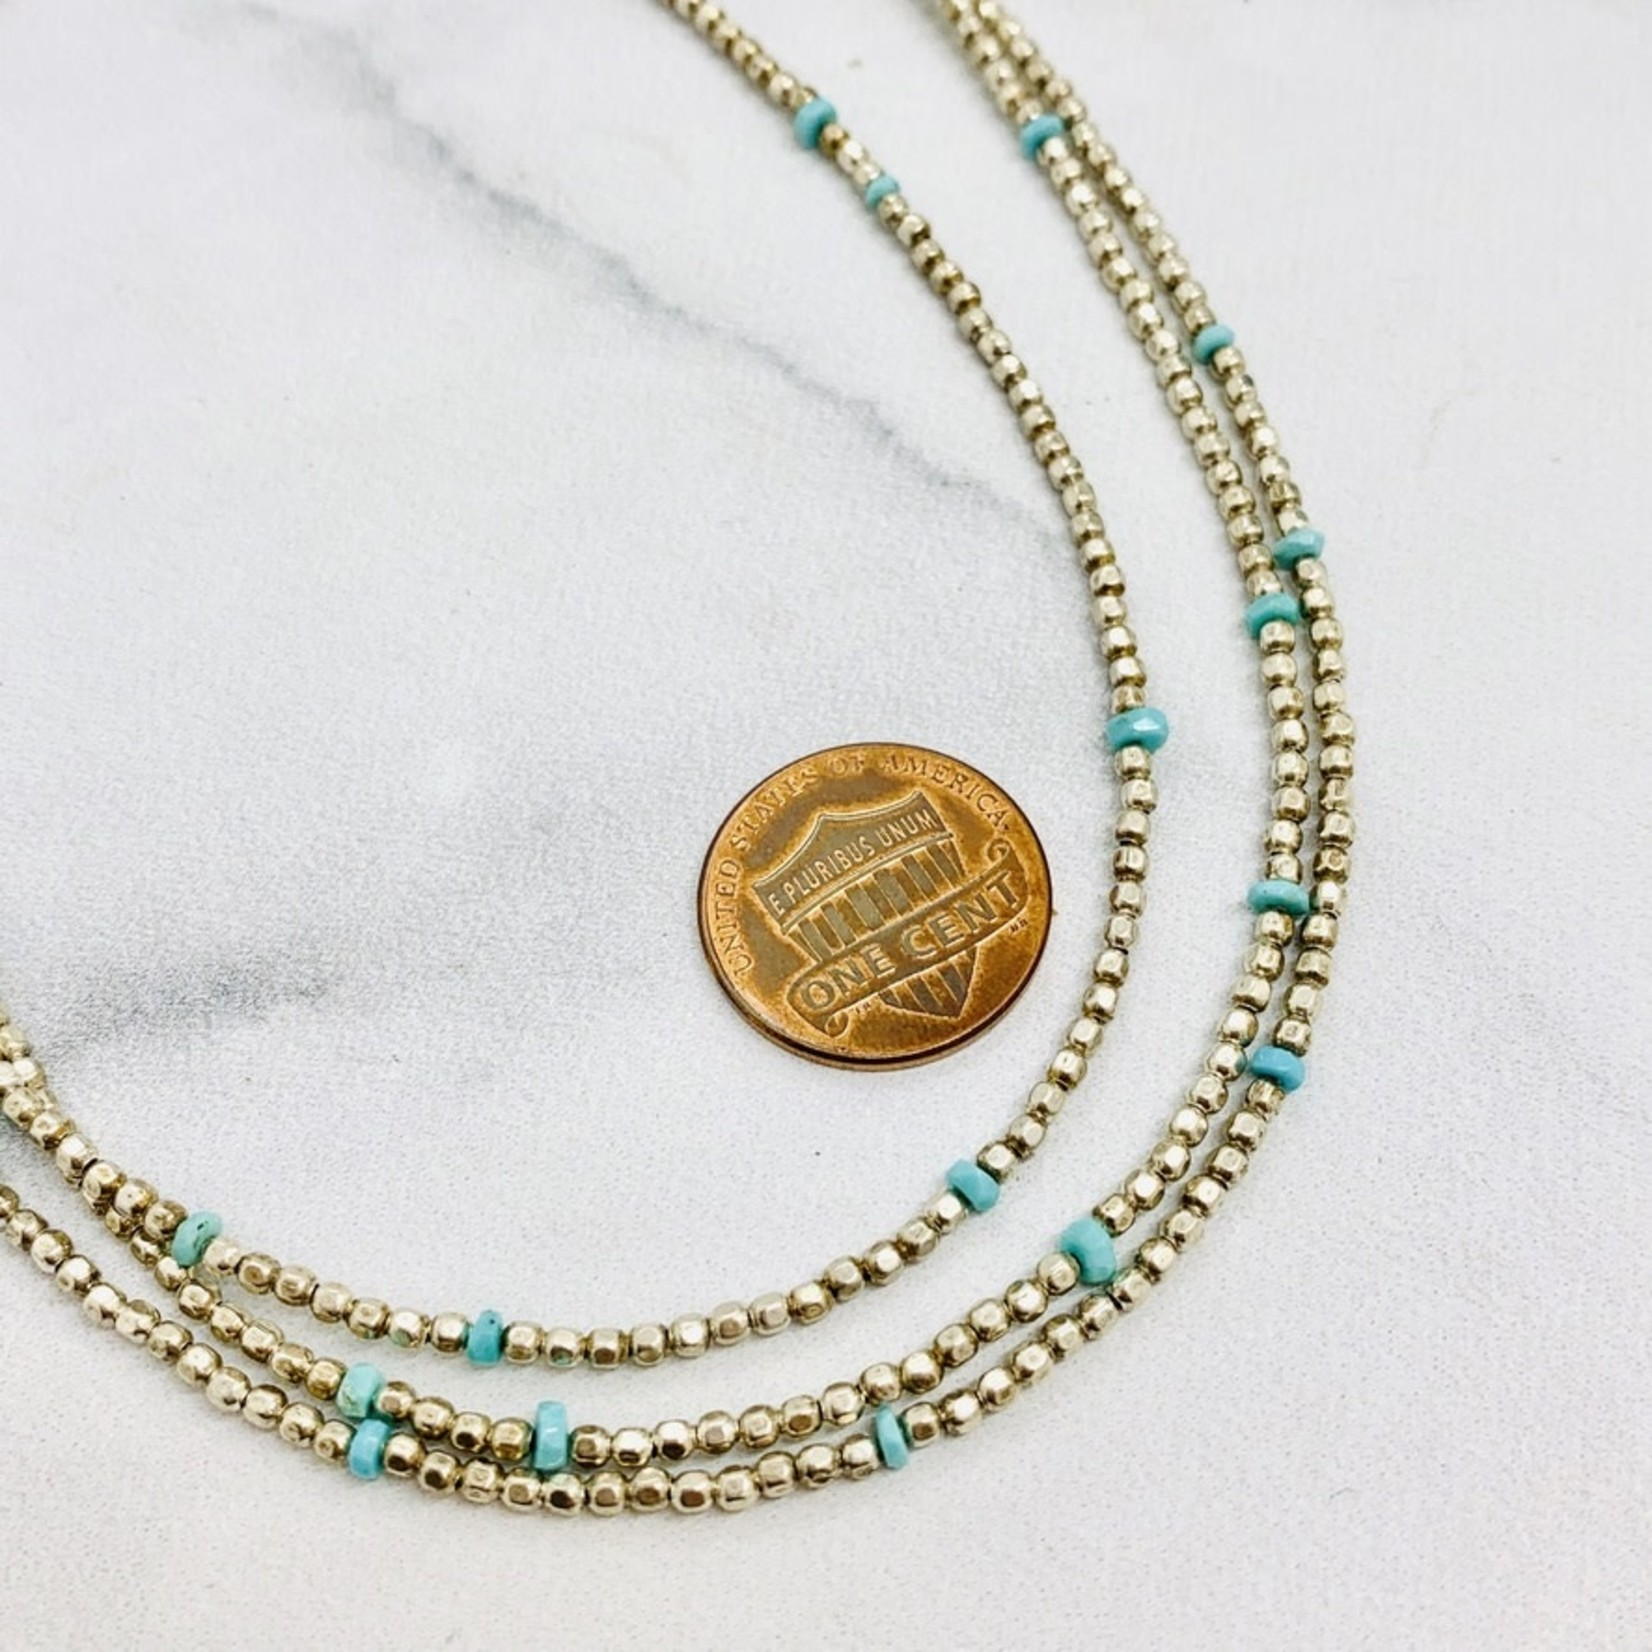 Handmade Sterling Silver and Sleeping Beauty Turquoise Triple Strand Necklace